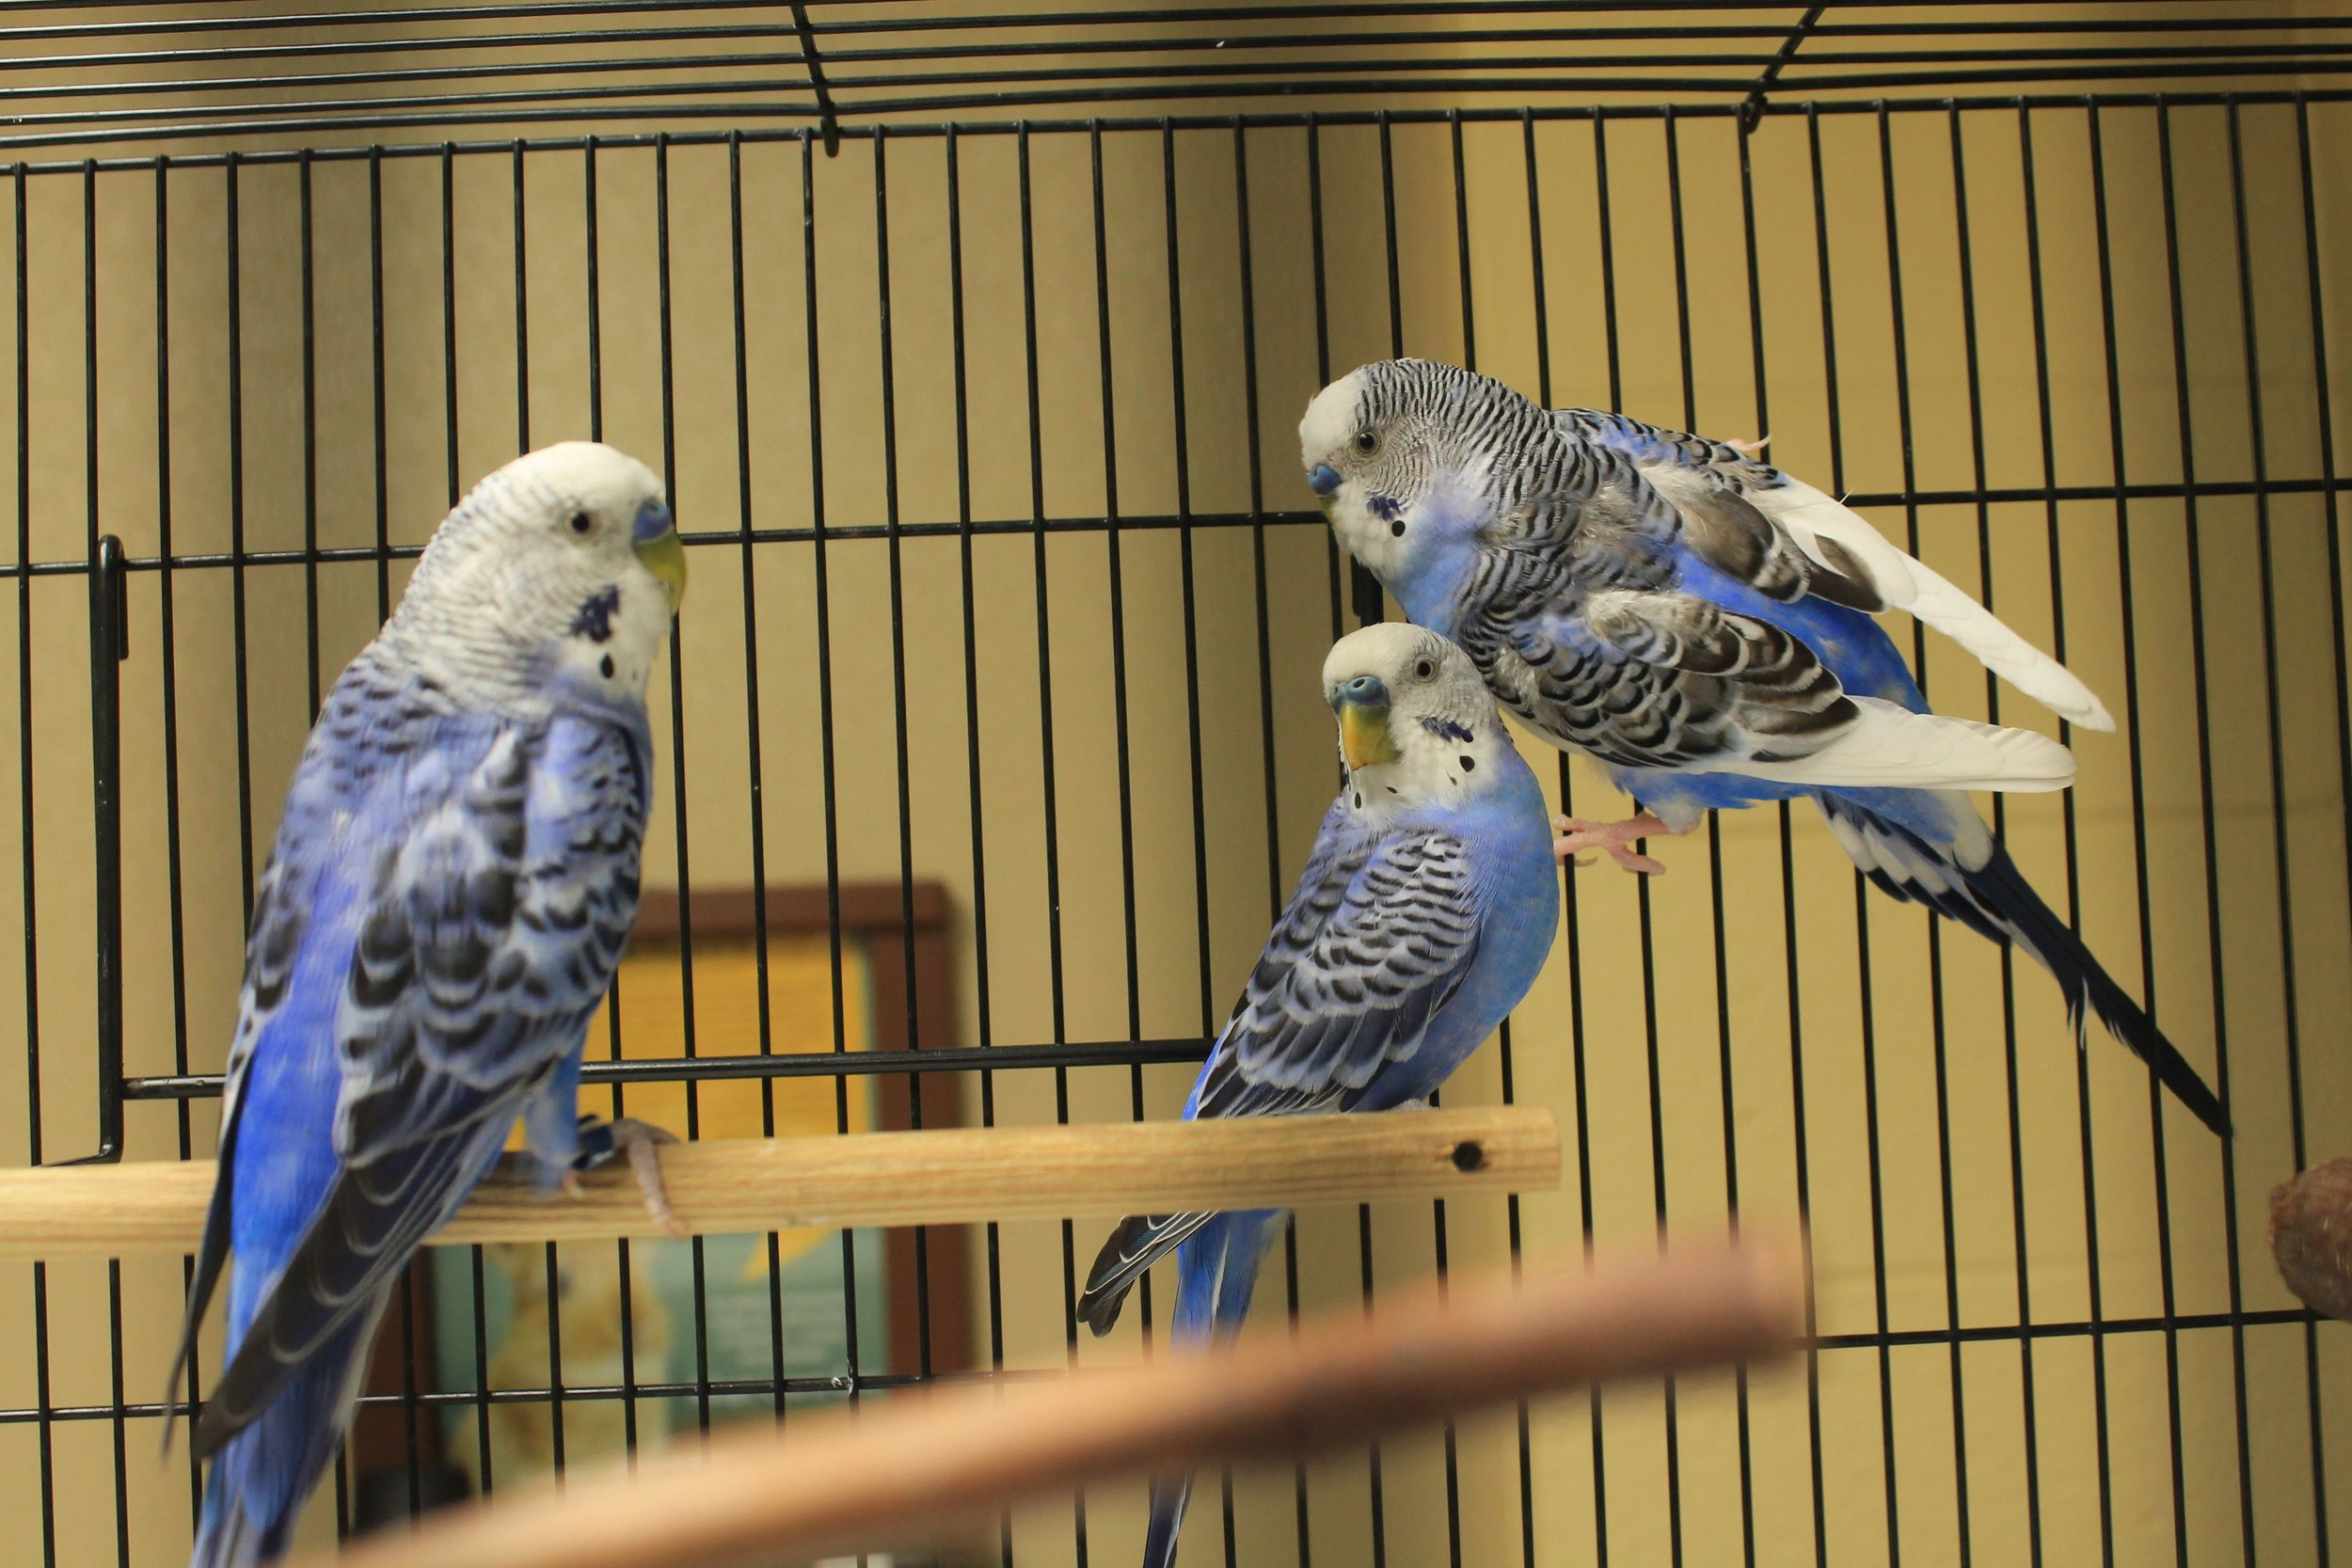 Sparky, Scooter,and Skipper must be adopted as a trio. They enjoy hanging out and chatting with each other. Valentines Day is around the corner and you are sure to fall in love!